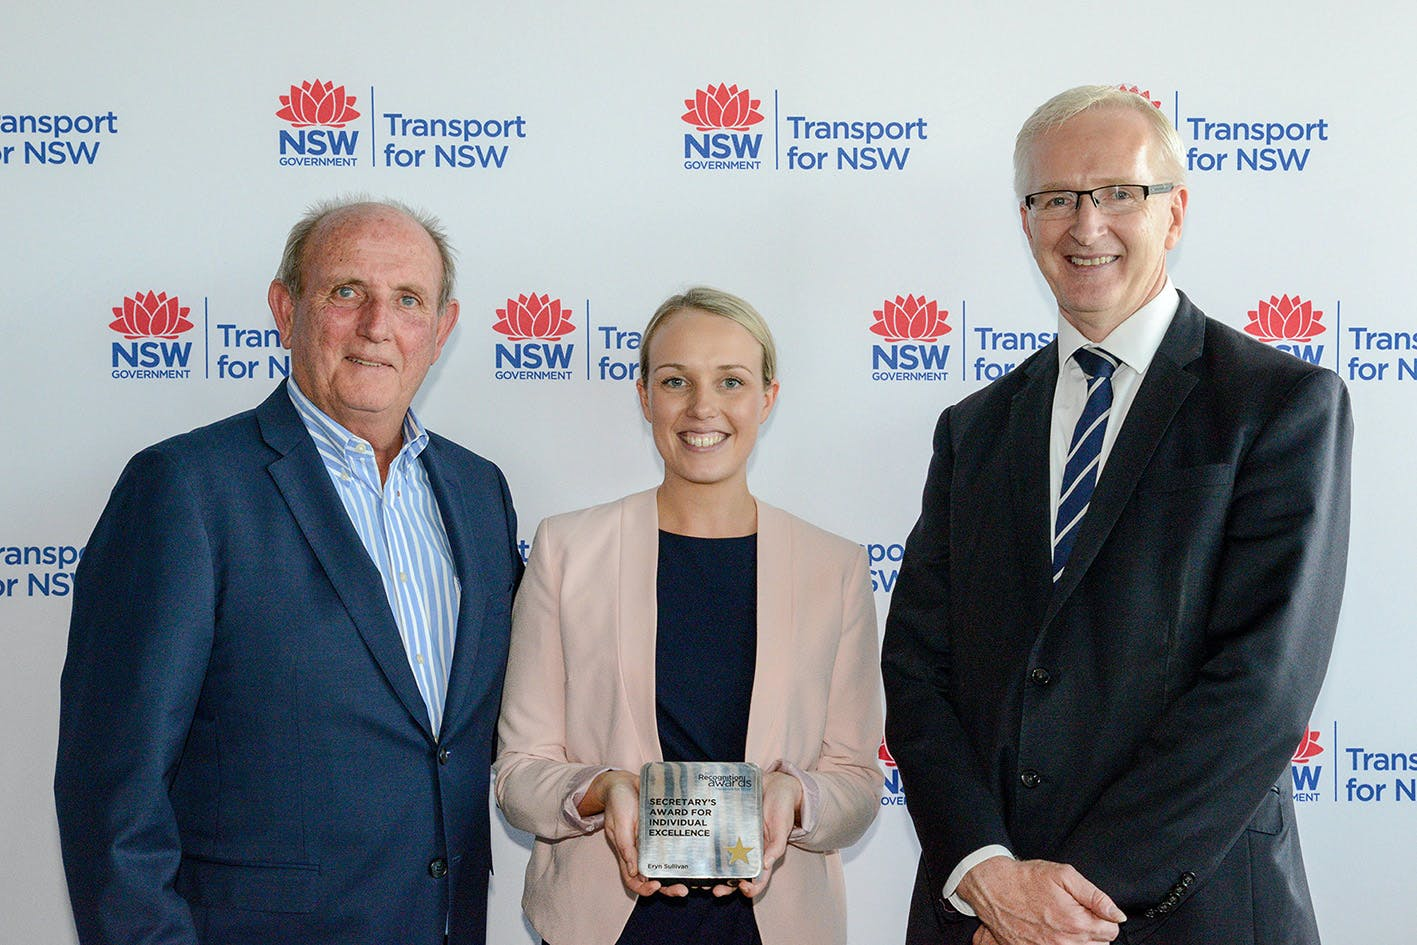 2017 Transport for NSW Recognition Awards